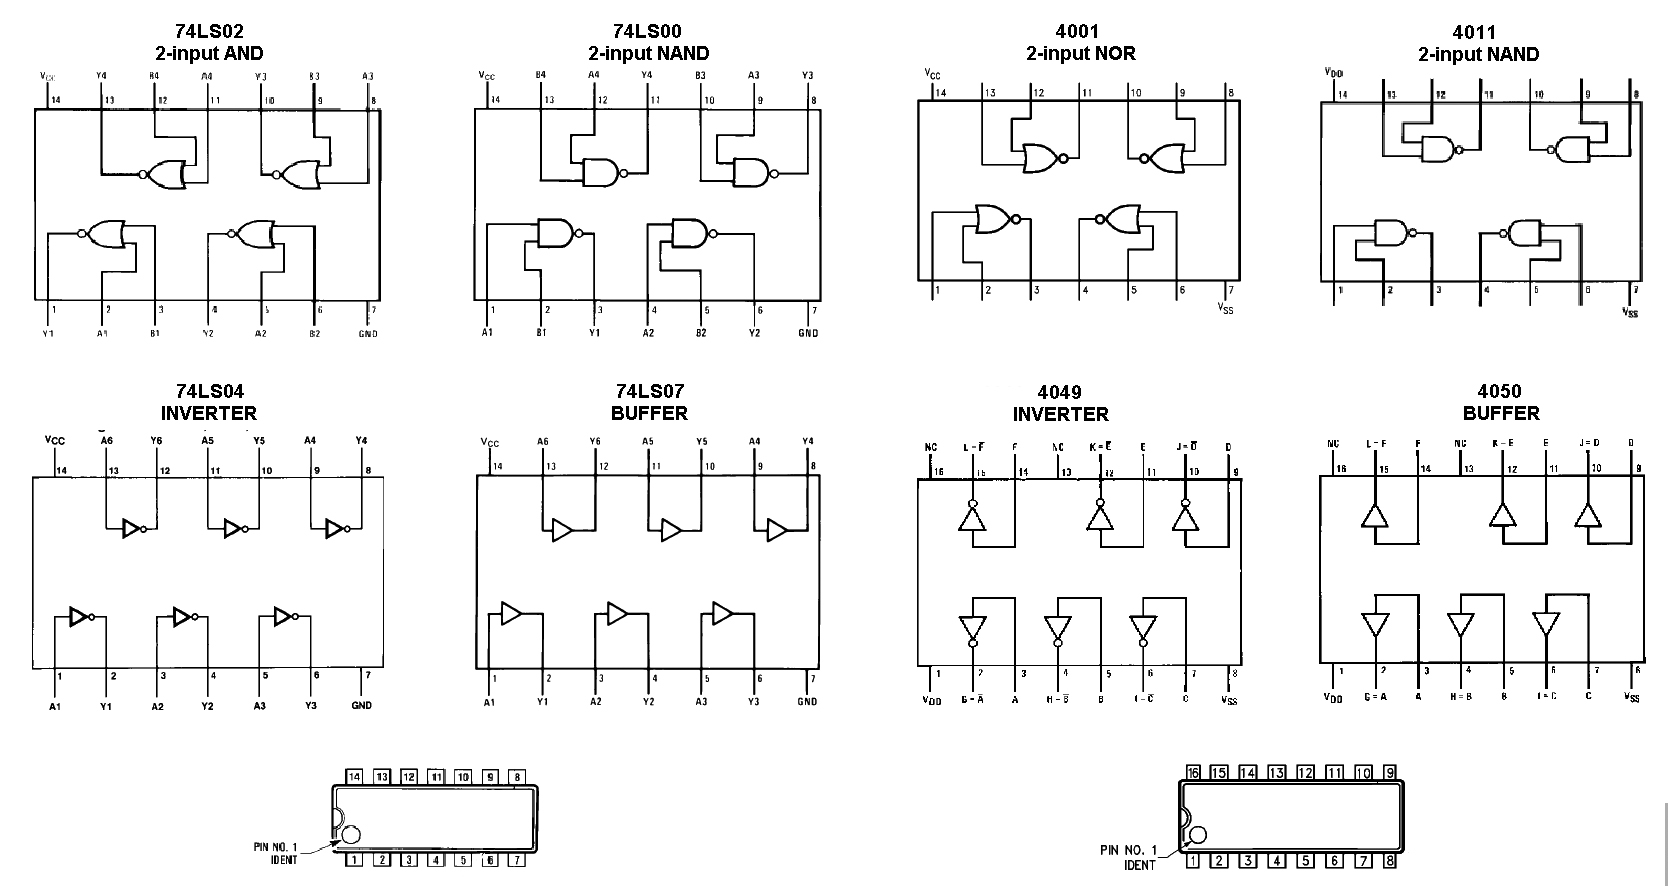 small logic gates the building blocks of versatile digital rh nutsvolts com logic gate diagrams example logic gate circuit